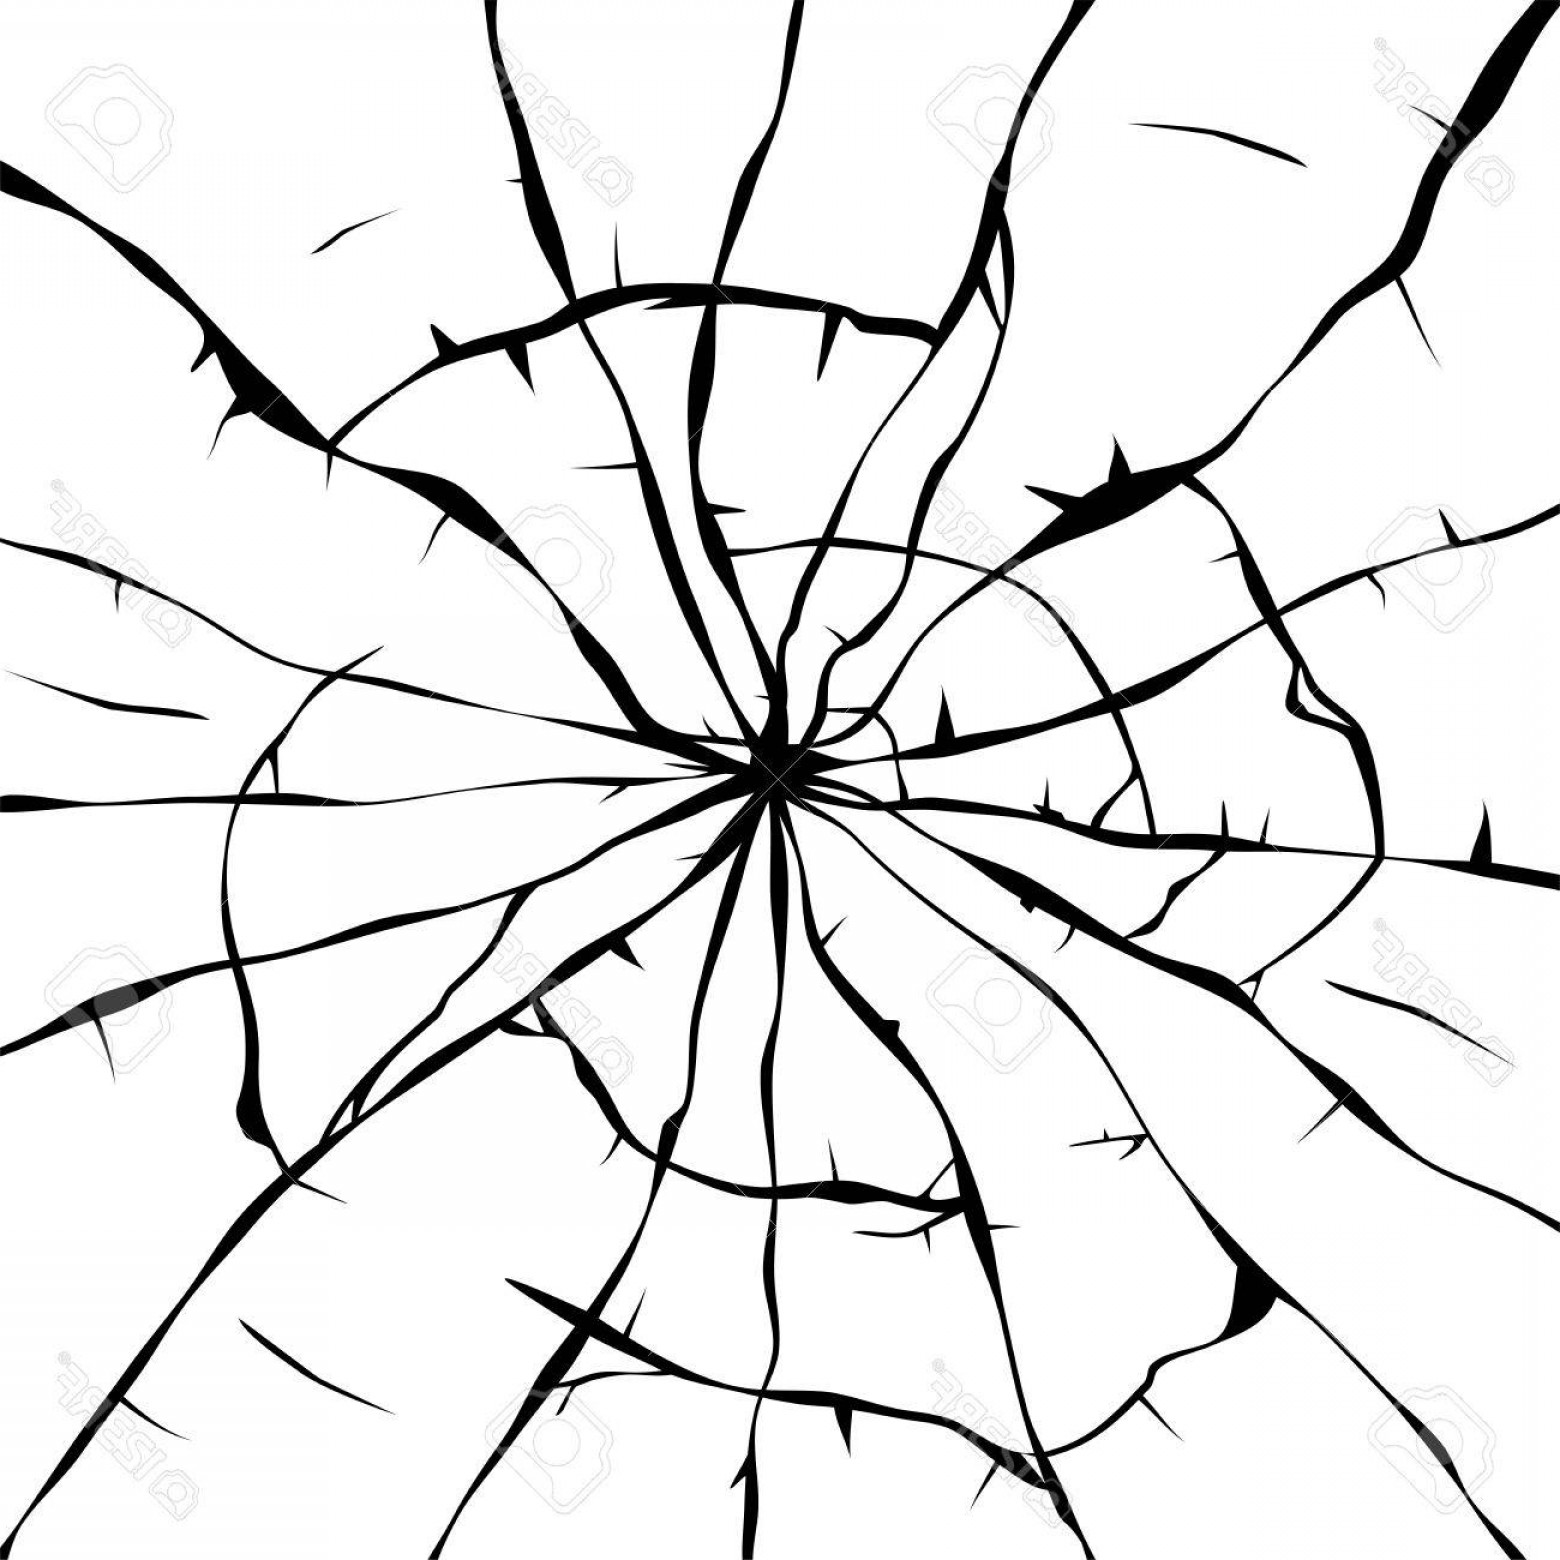 1560x1560 Photostock Vector Black And White Background Of Broken Glass